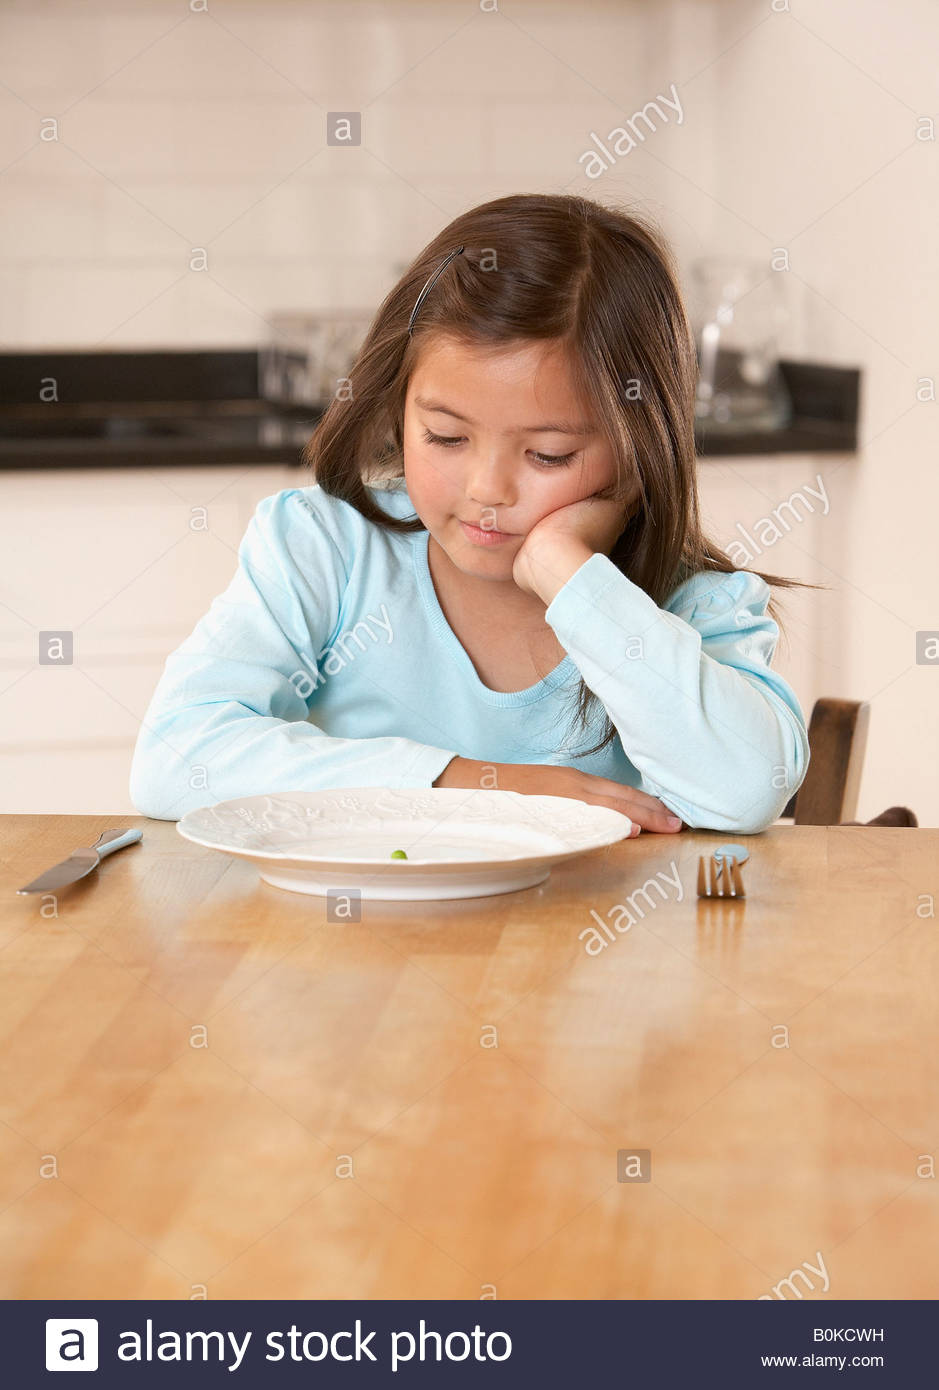 Young girl in kitchen with a single green pea on her plate looking unhappy - Stock Image